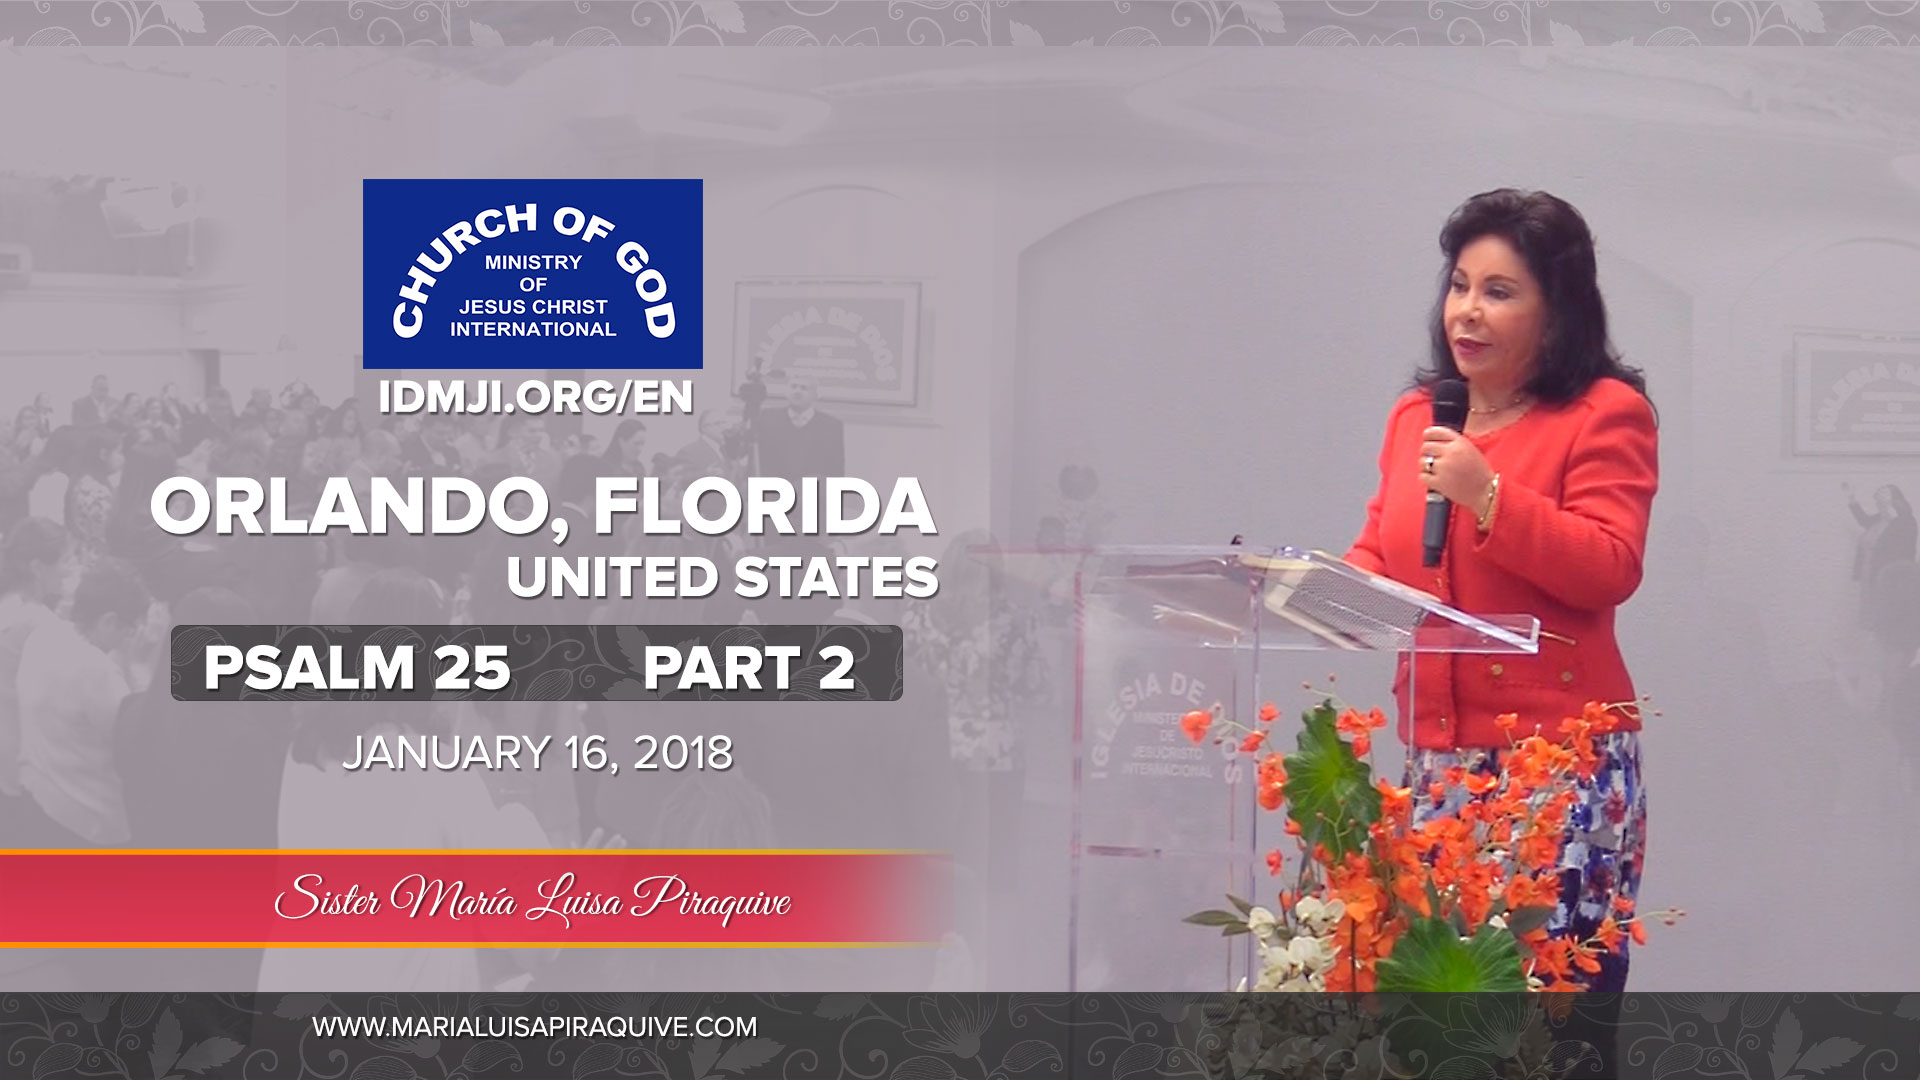 Bible study: Psalm 25 part 2, Orlando Florida